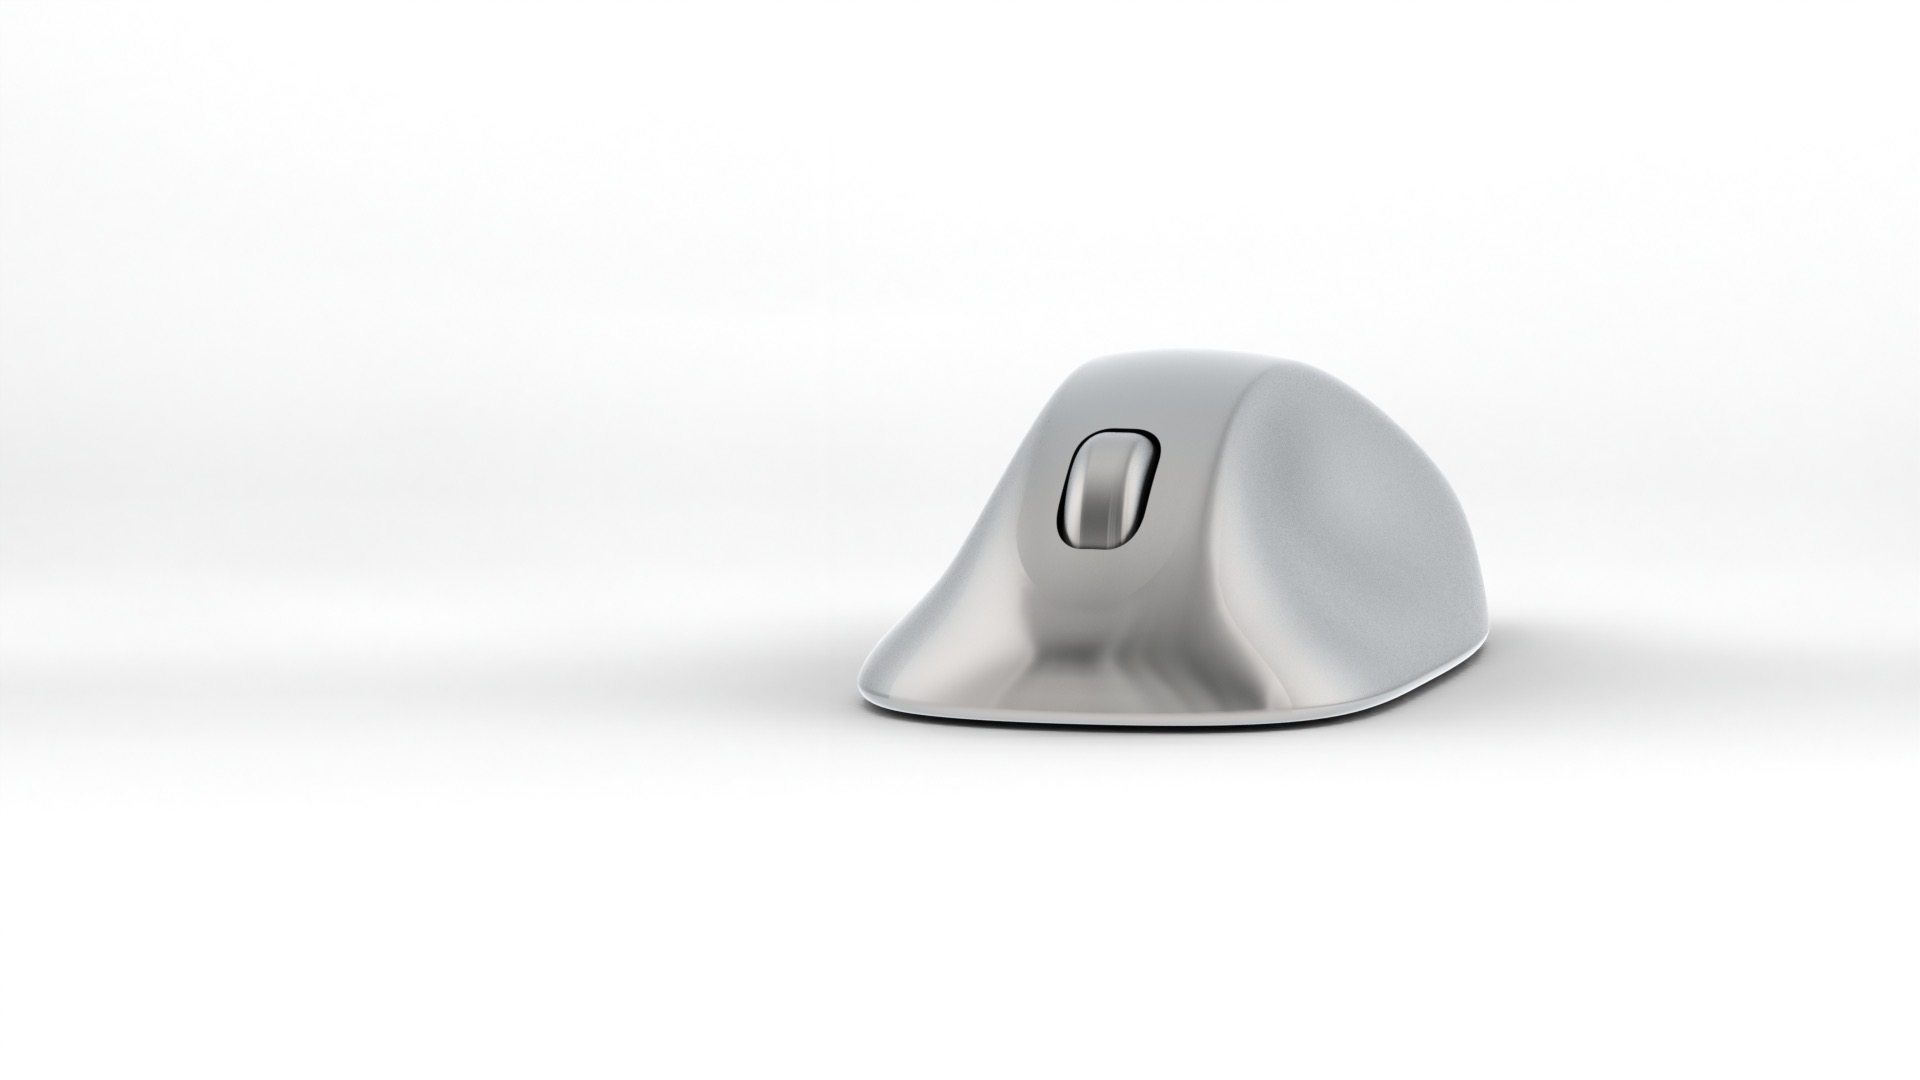 150721 McCurdy Computer Mouse Render 1.jpg